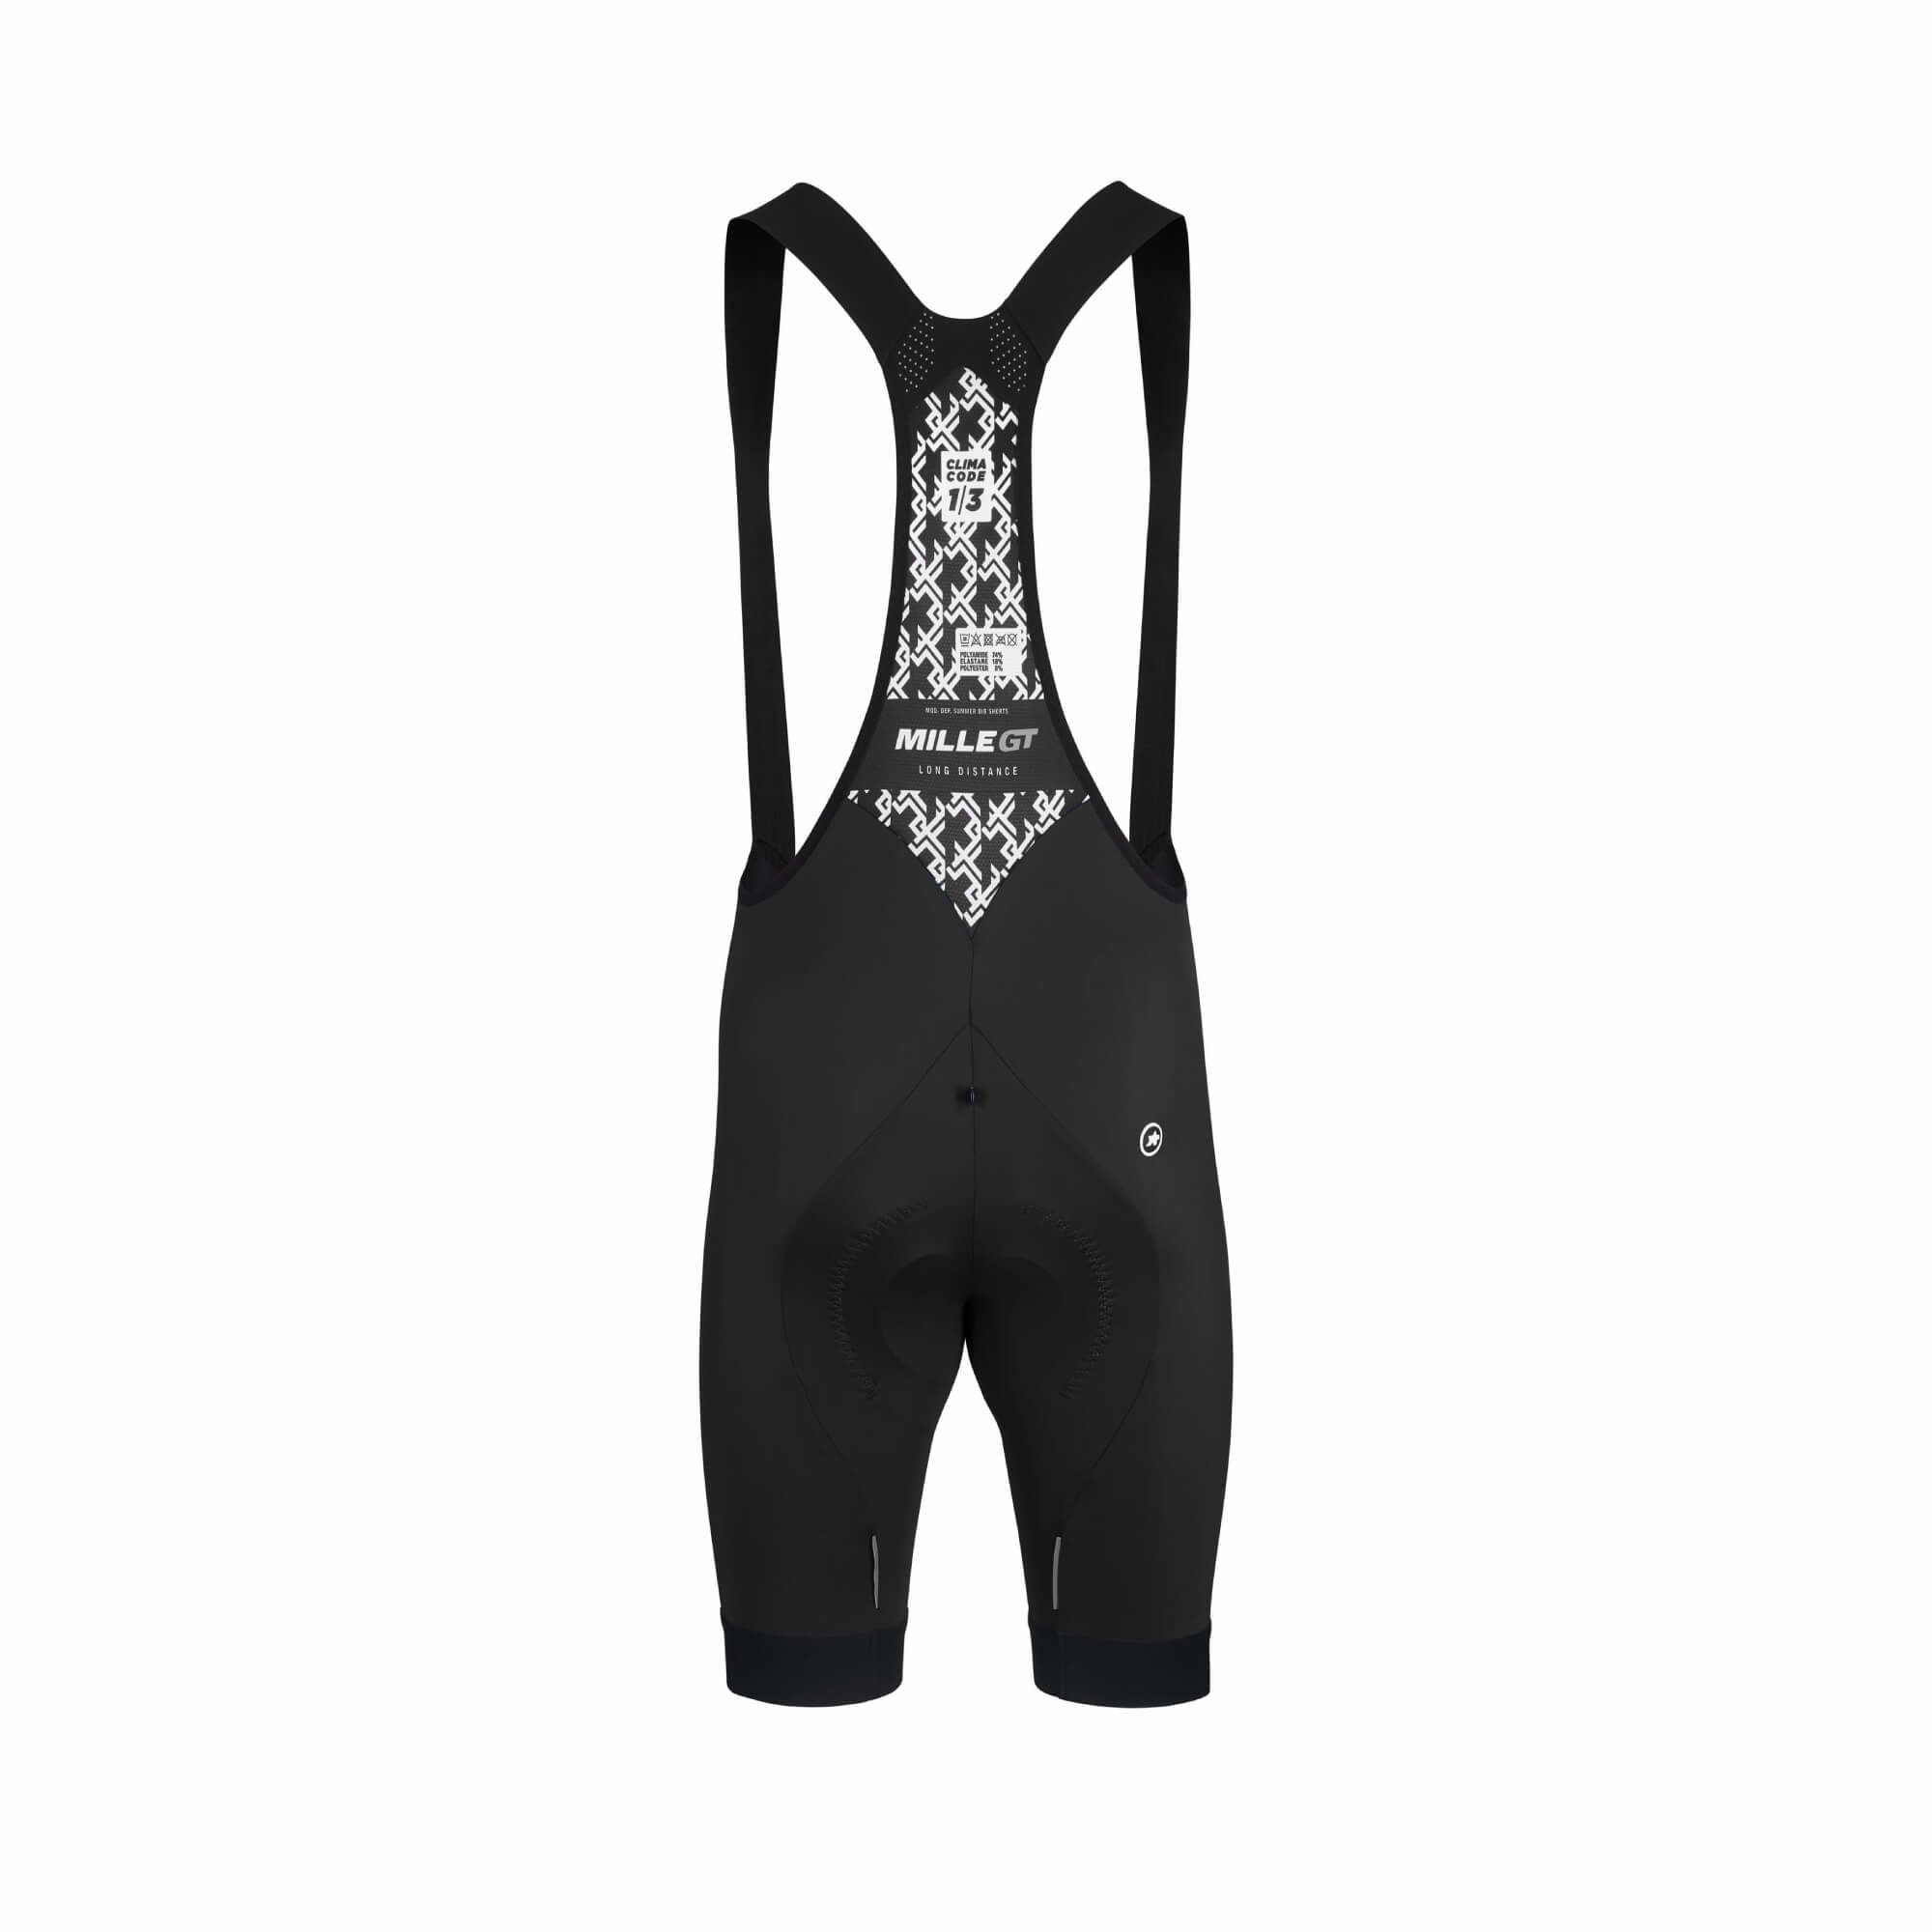 Mille GT Black Series Bib Shorts-3